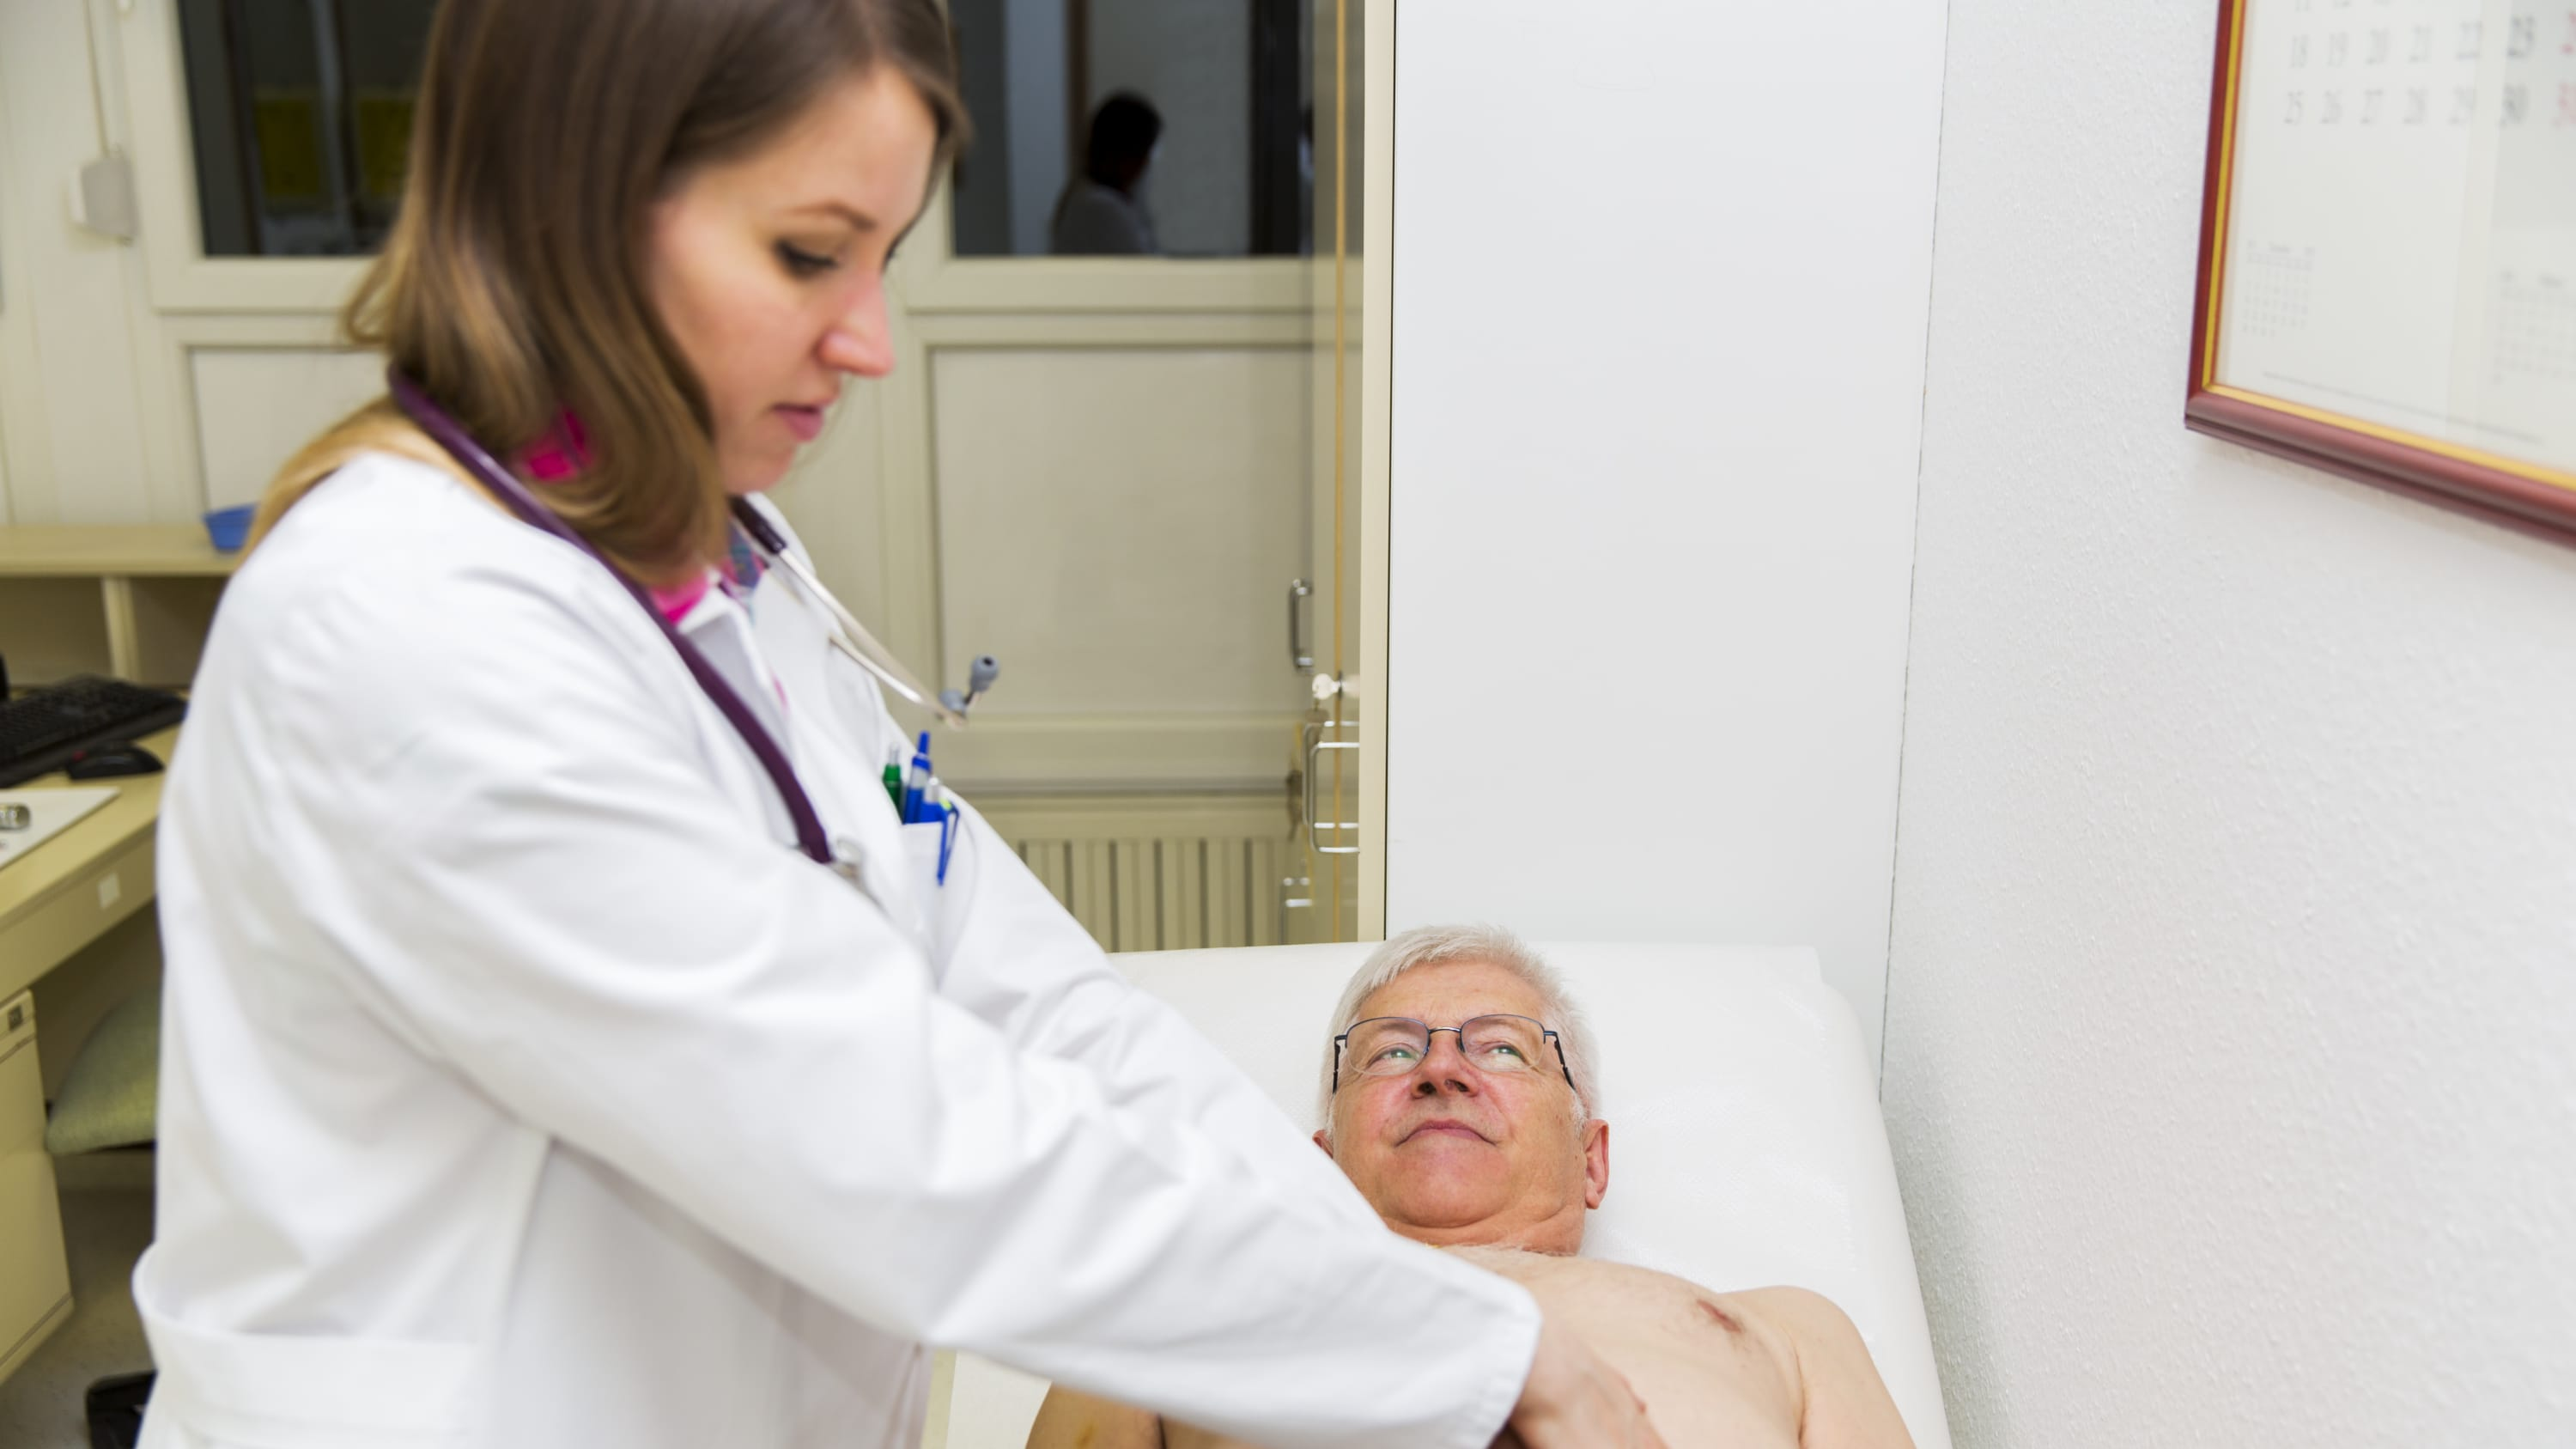 A doctor examines an older man who may be a candidate for a liver transplant.